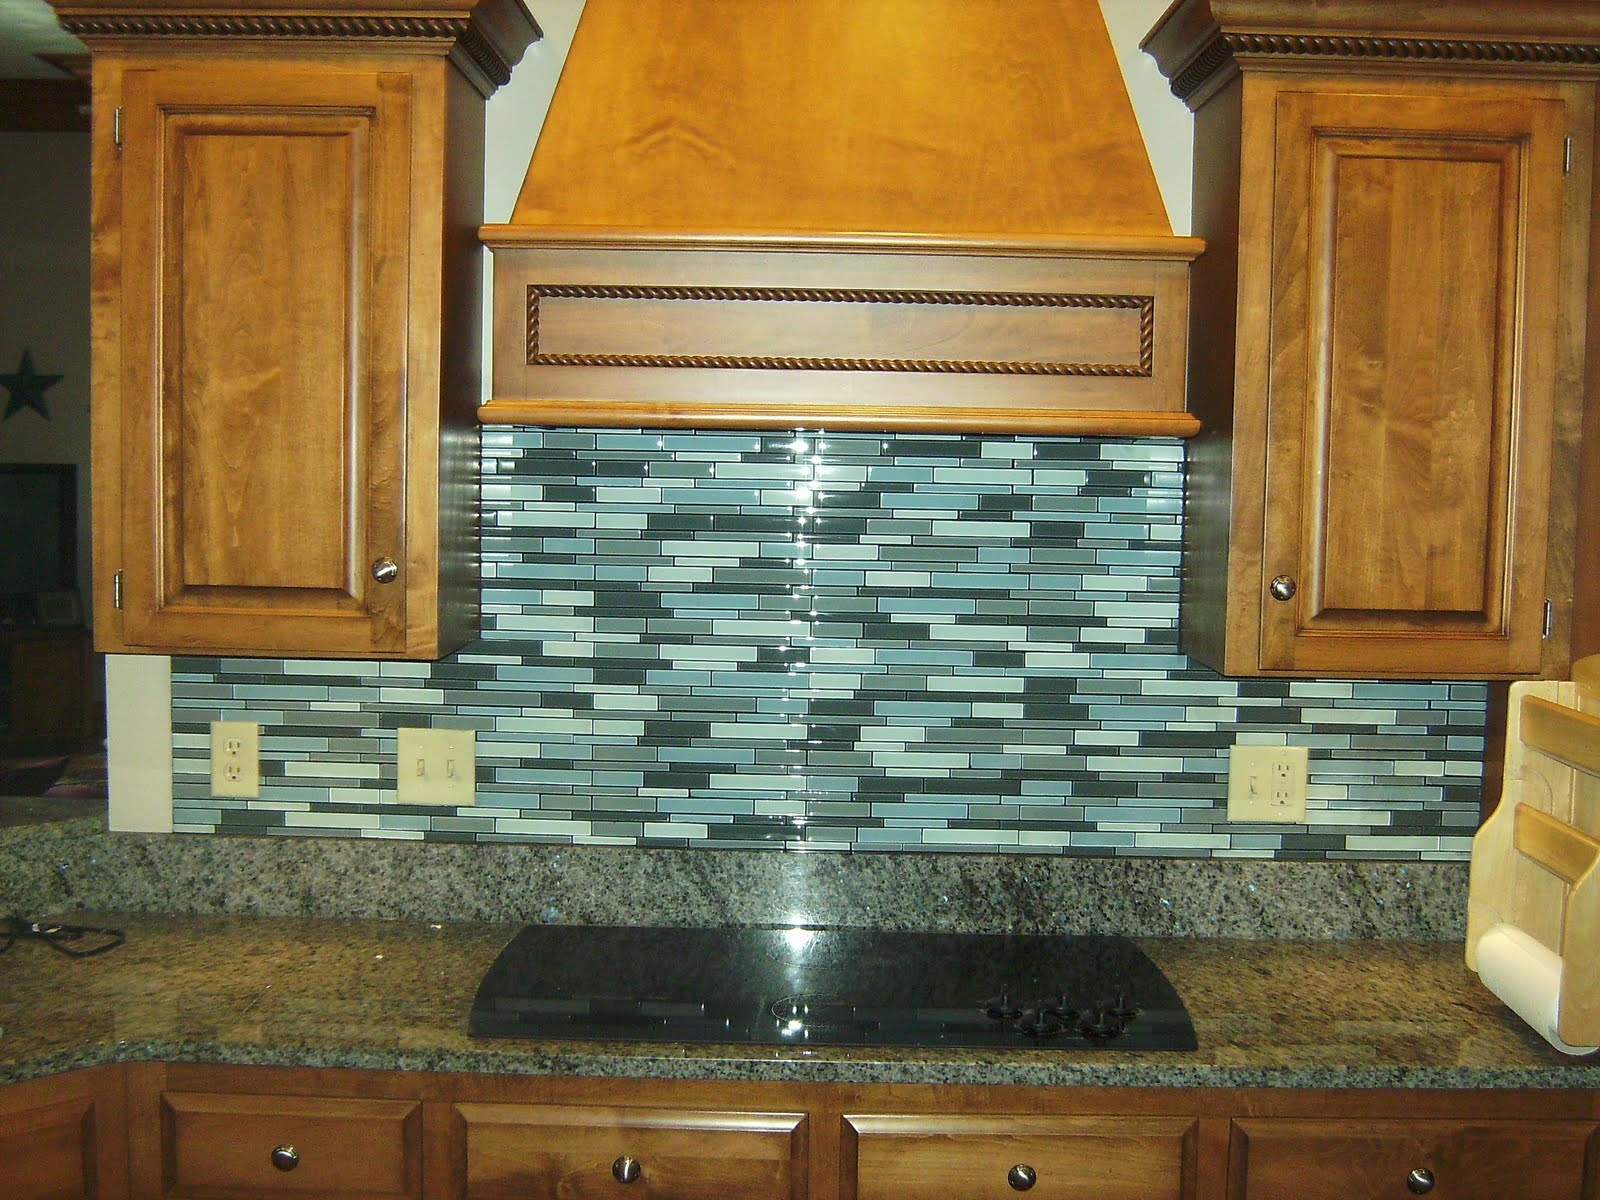 Knapp Tile and Flooring, Inc.: Glass Tile Backsplash